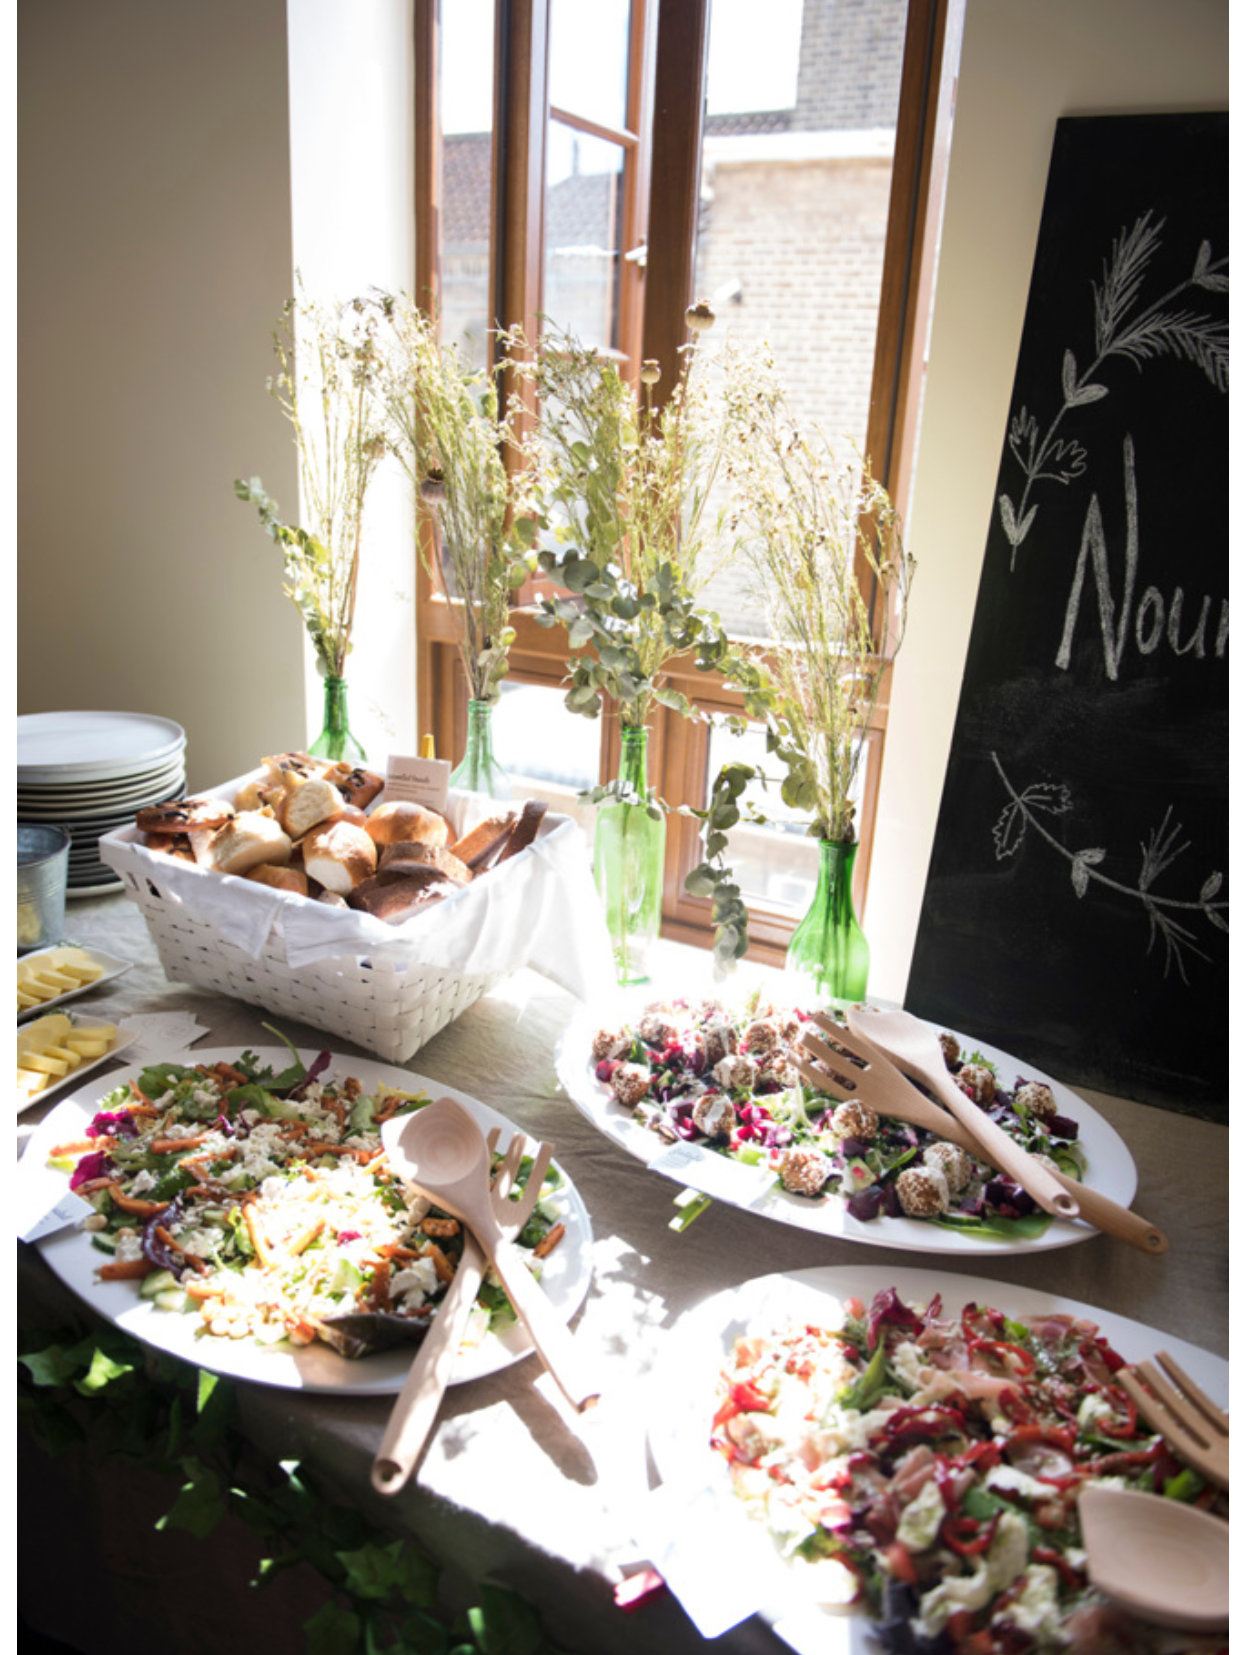 Lunch to nourish our hungry workshoppers